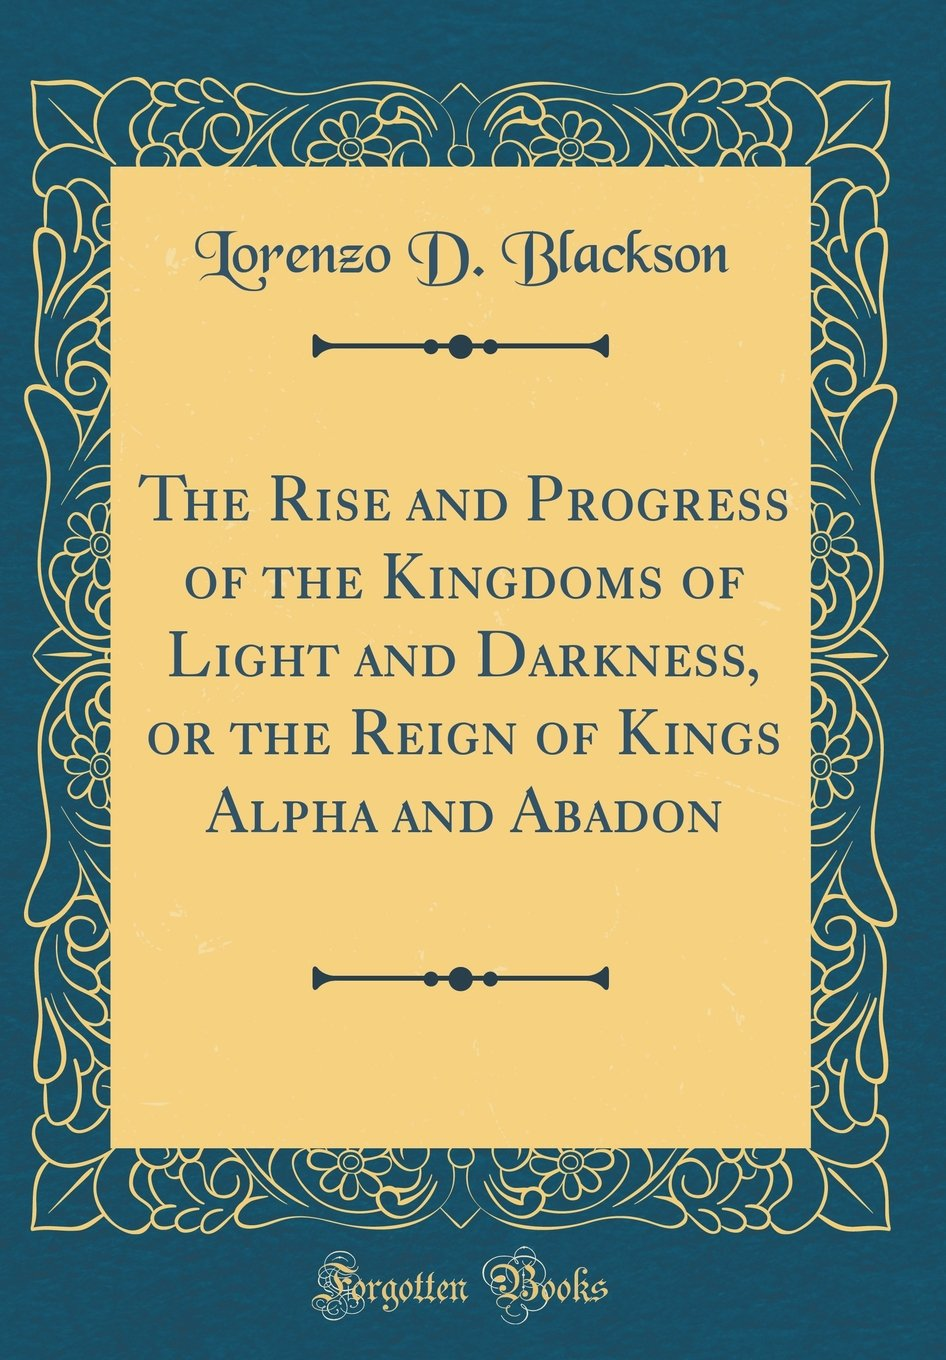 Download The Rise and Progress of the Kingdoms of Light and Darkness, or the Reign of Kings Alpha and Abadon (Classic Reprint) pdf